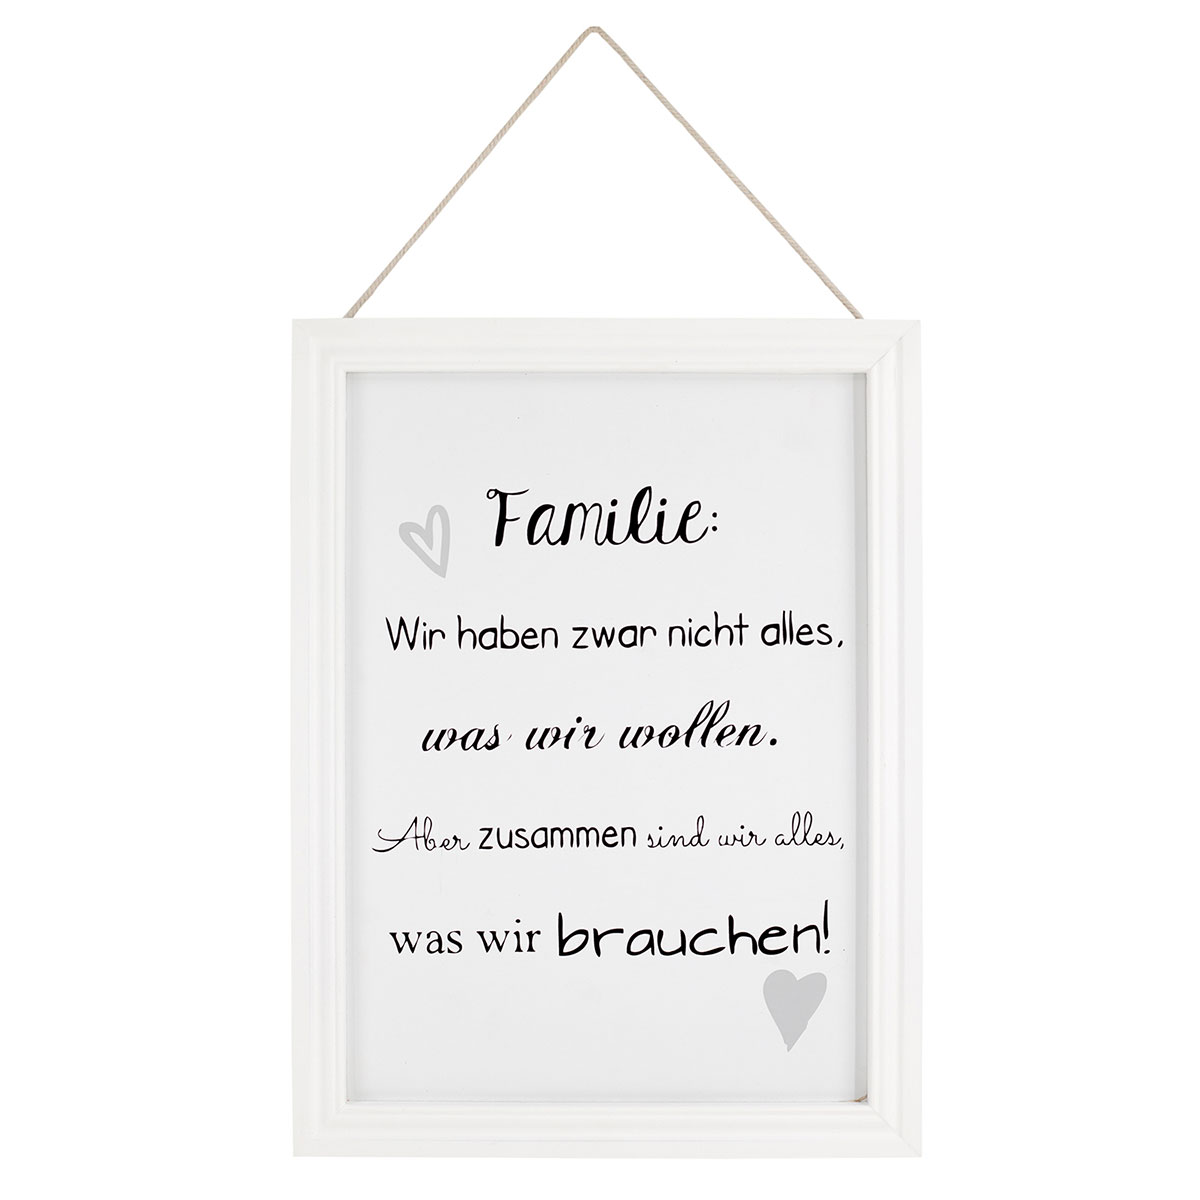 schild mit spruch familie bilderrahmen fotorahmen mit spruch wanddekoration wandbild. Black Bedroom Furniture Sets. Home Design Ideas